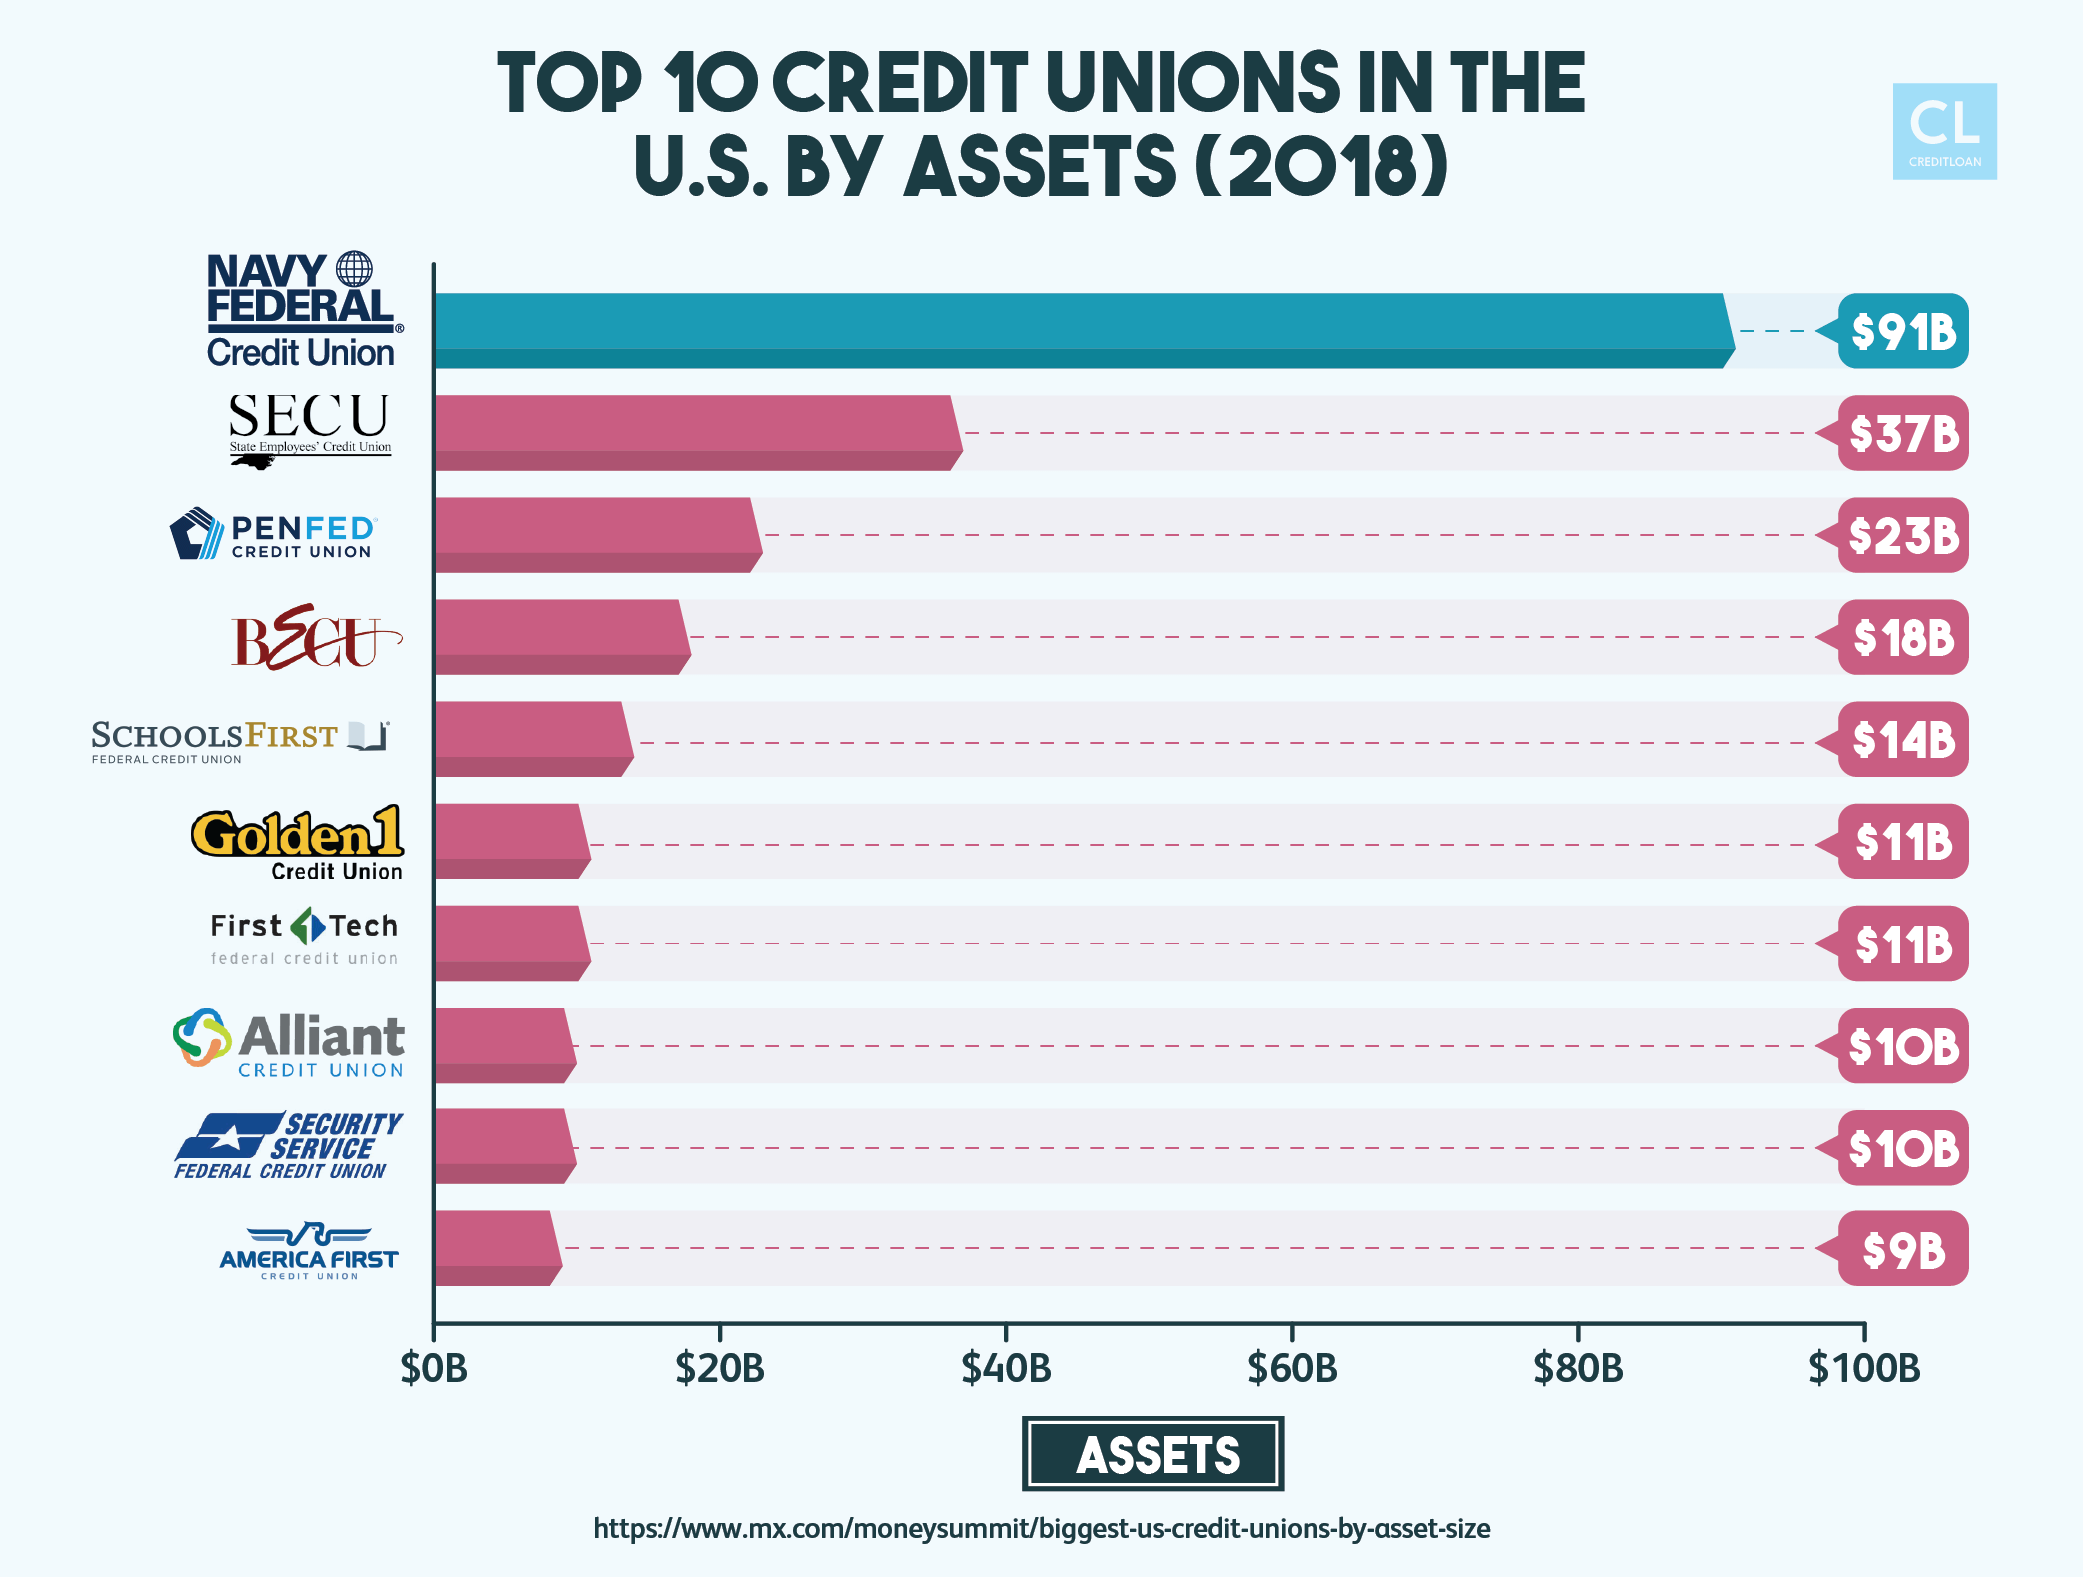 small-business-financial-sources-credit-unions